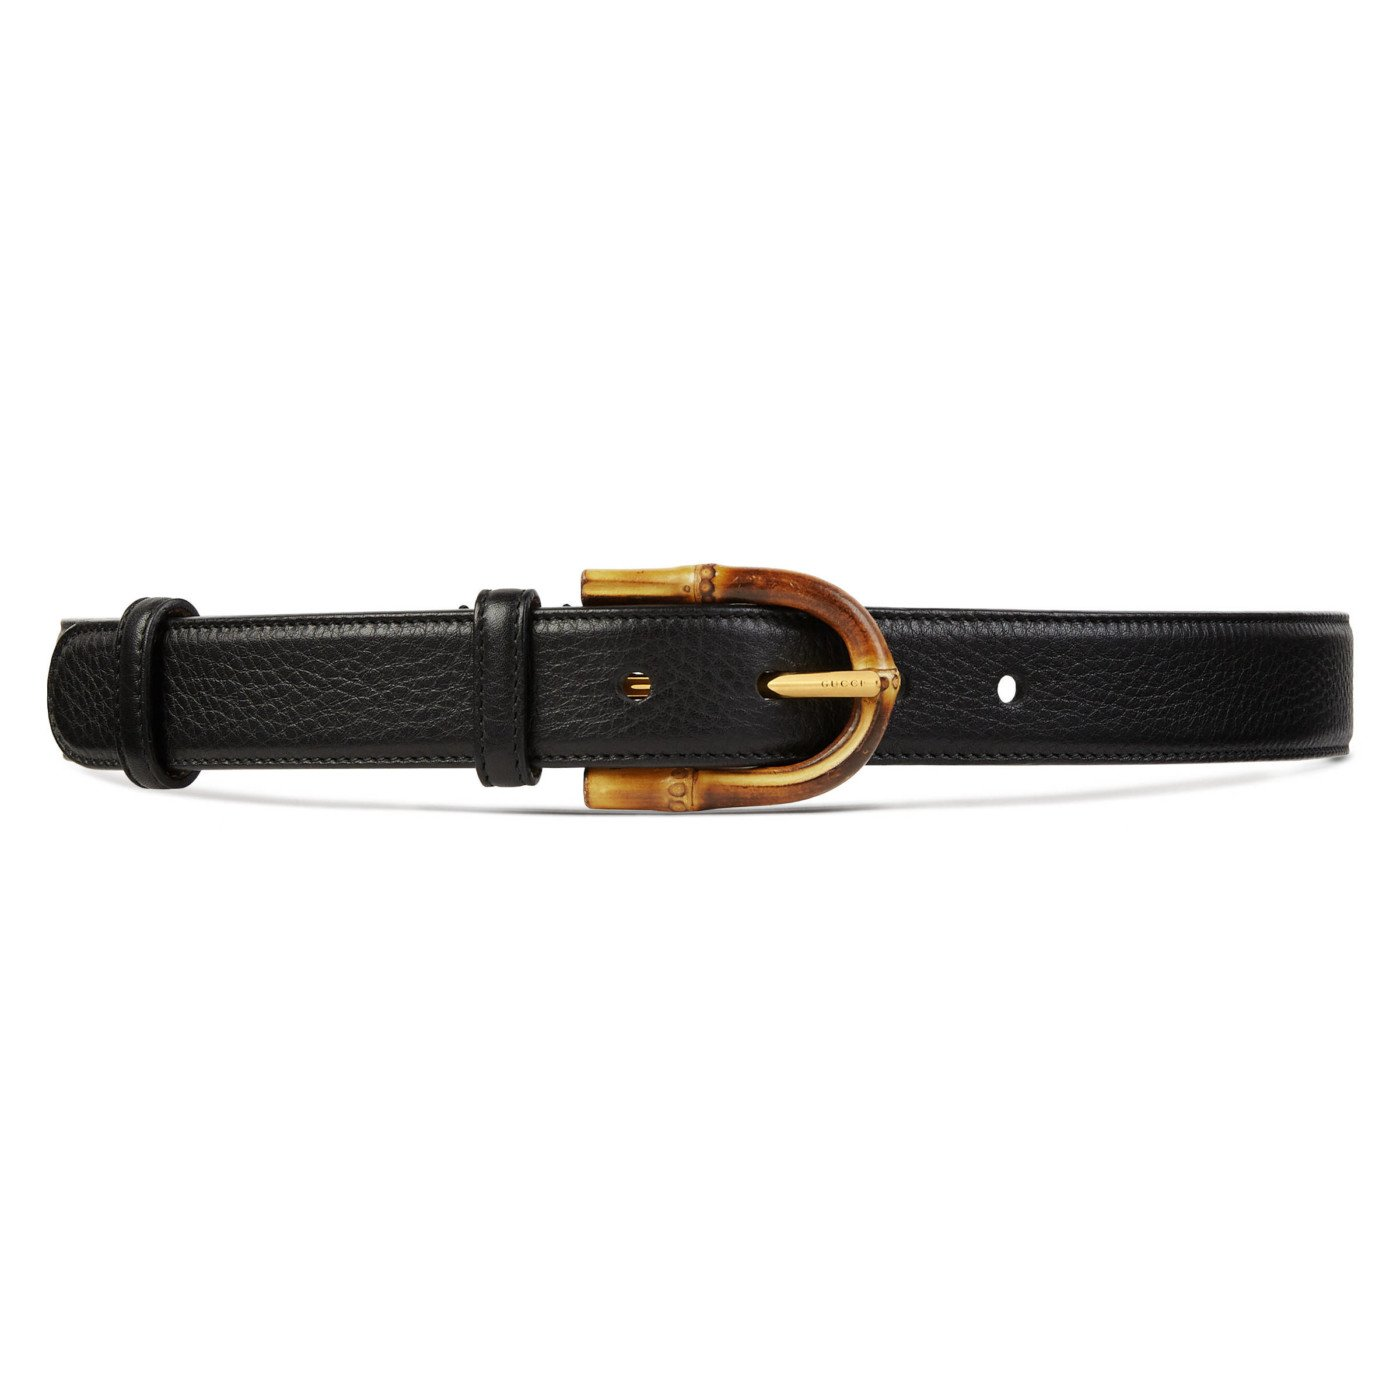 Gucci Women's Bamboo Buckle Black Leather Belt, 40, Black by Gucci (Image #4)